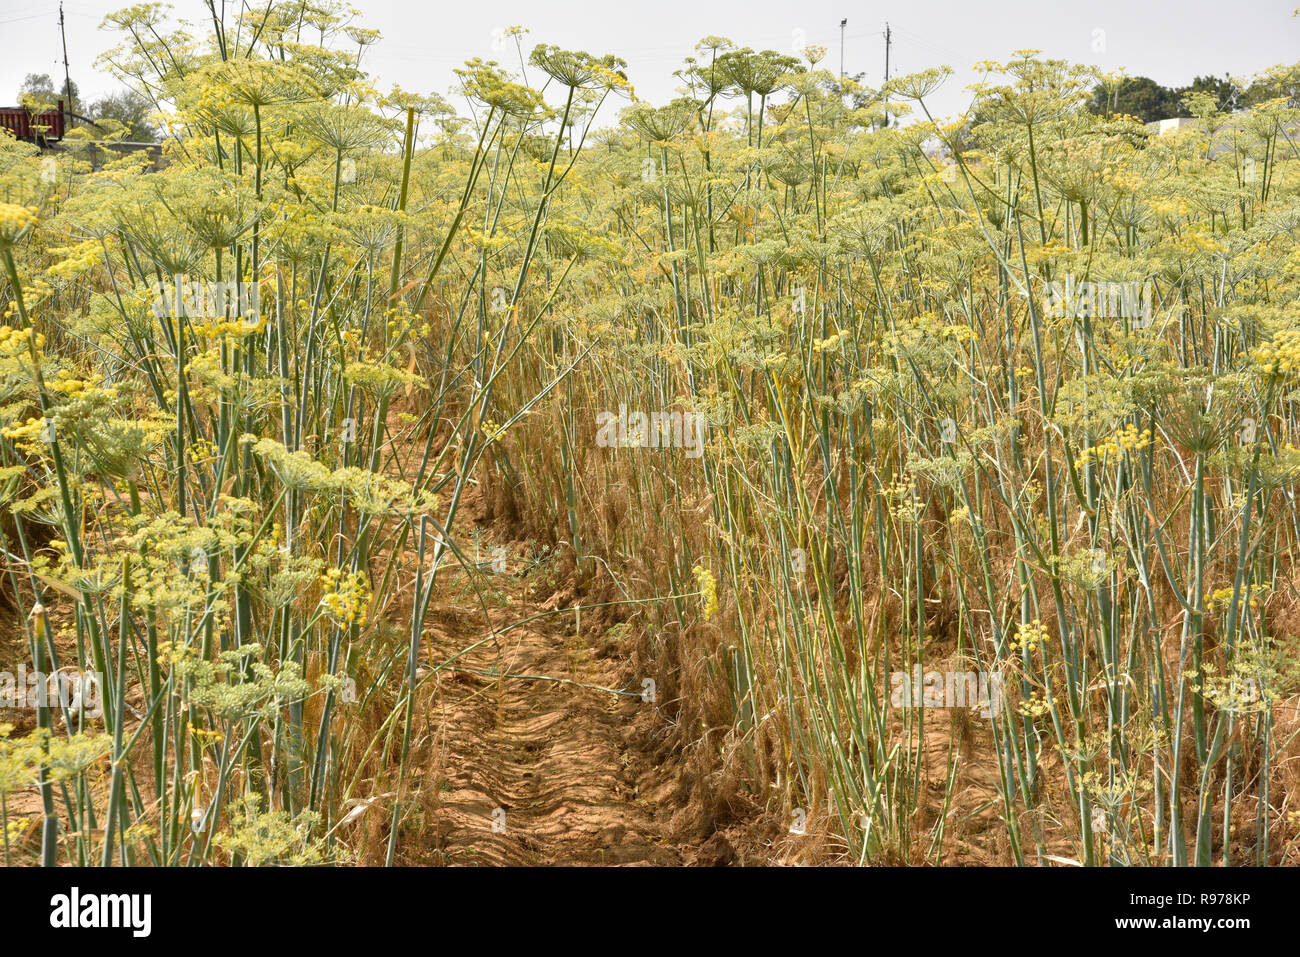 Well organised Pimpinella Anisum aniseed plantation cultivated in Gujarat India known as Variyali used for variety of ailments food spice herbal issue. - Stock Image